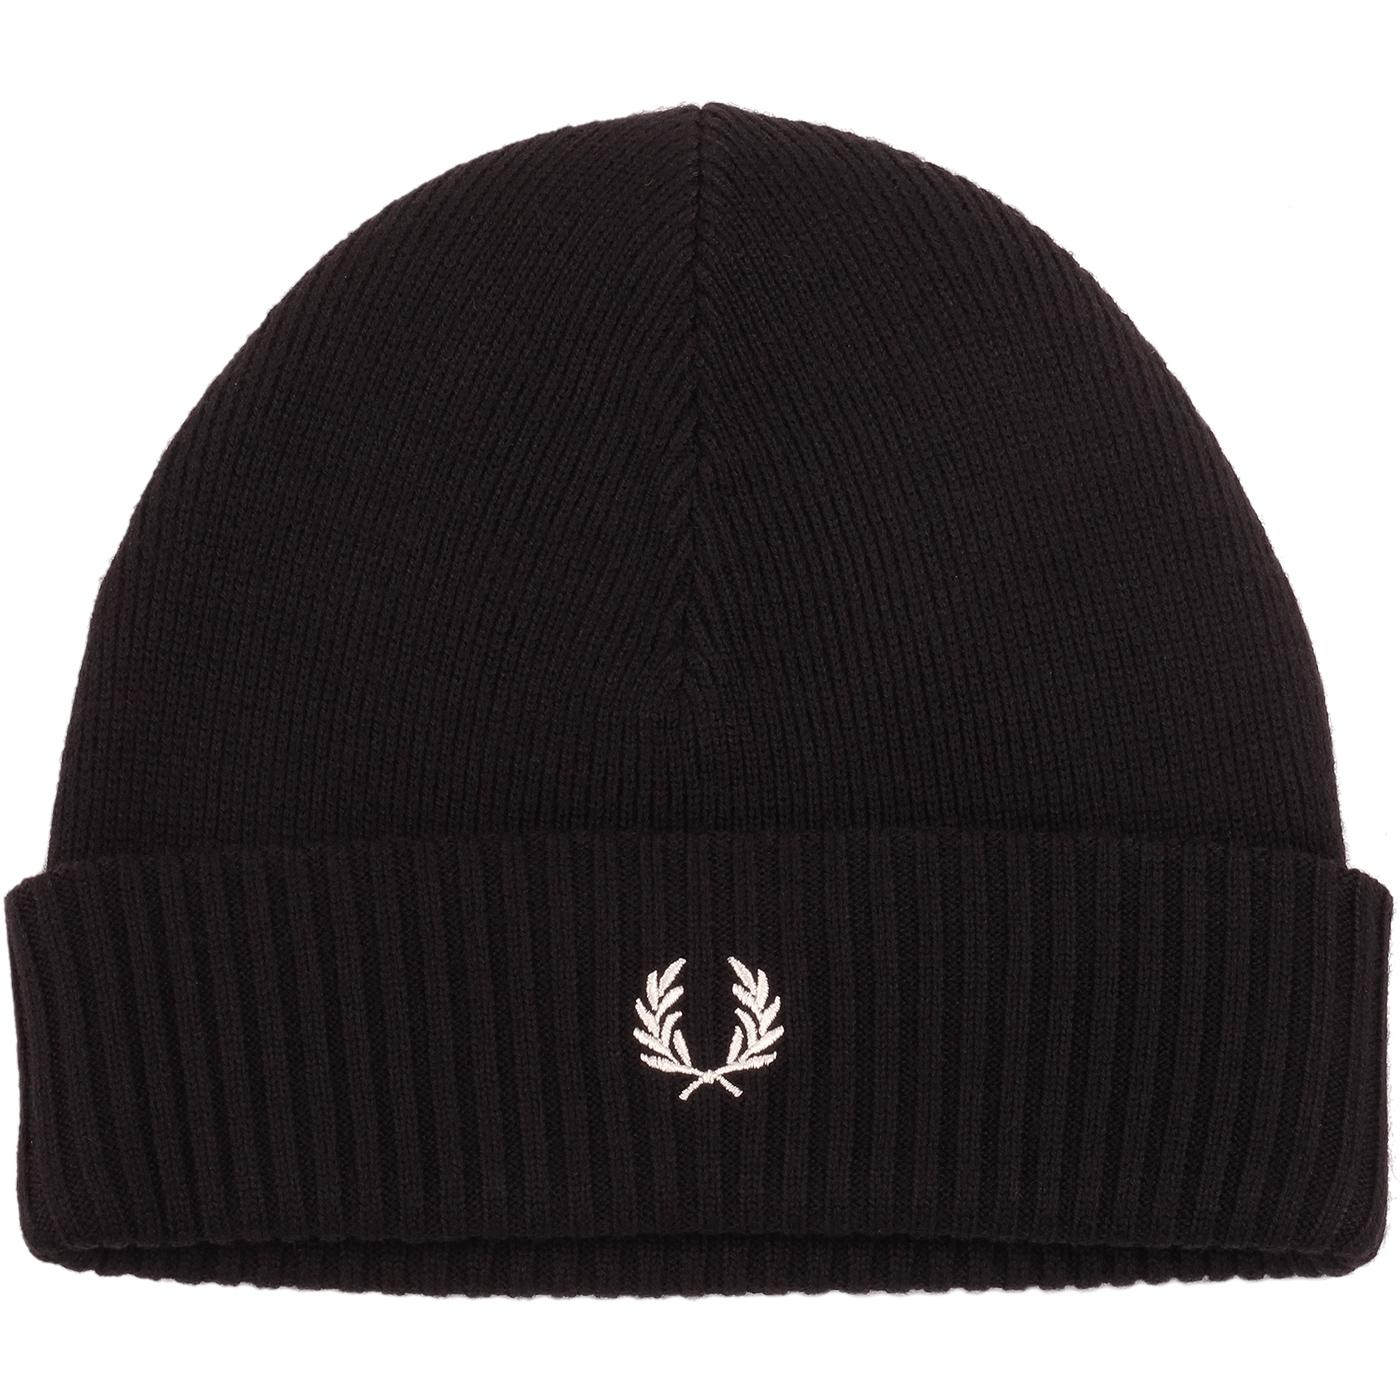 FRED PERRY Retro Knit Roll Up Beanie Hat (Black)